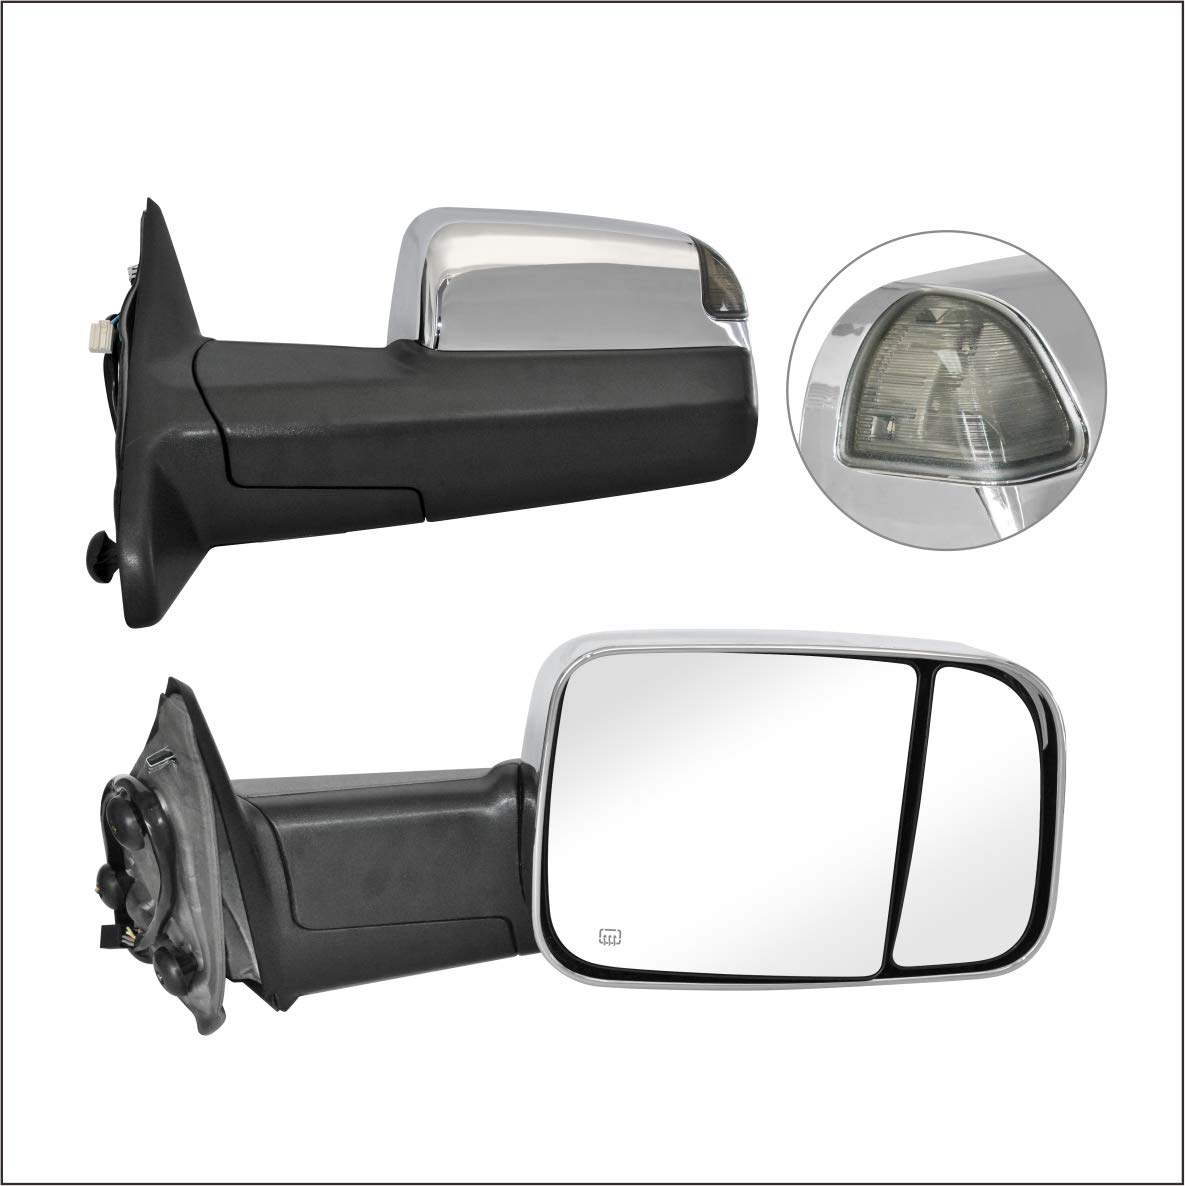 Perfit Zone TOWING MIRROR Replacement Fit For 2009-2010 DODGE RAM PAIR POWERED With HEATED With SMOKE SIGNAL With TEMPERATURE SENSOR With PUDDLE LIGHT-CHROME